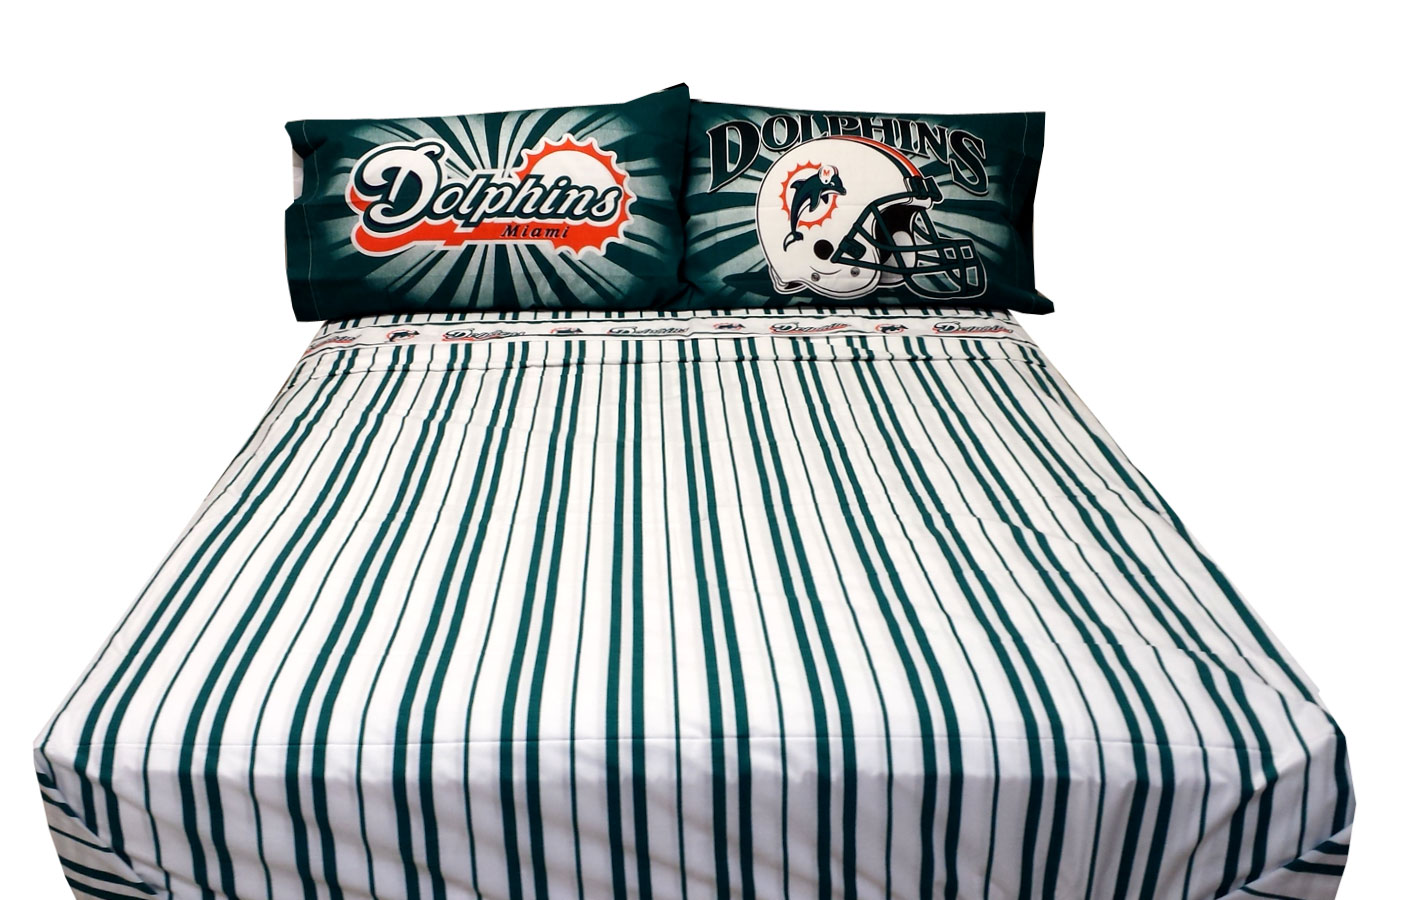 Nfl Football Miami Dolphins Bed Sheet Set